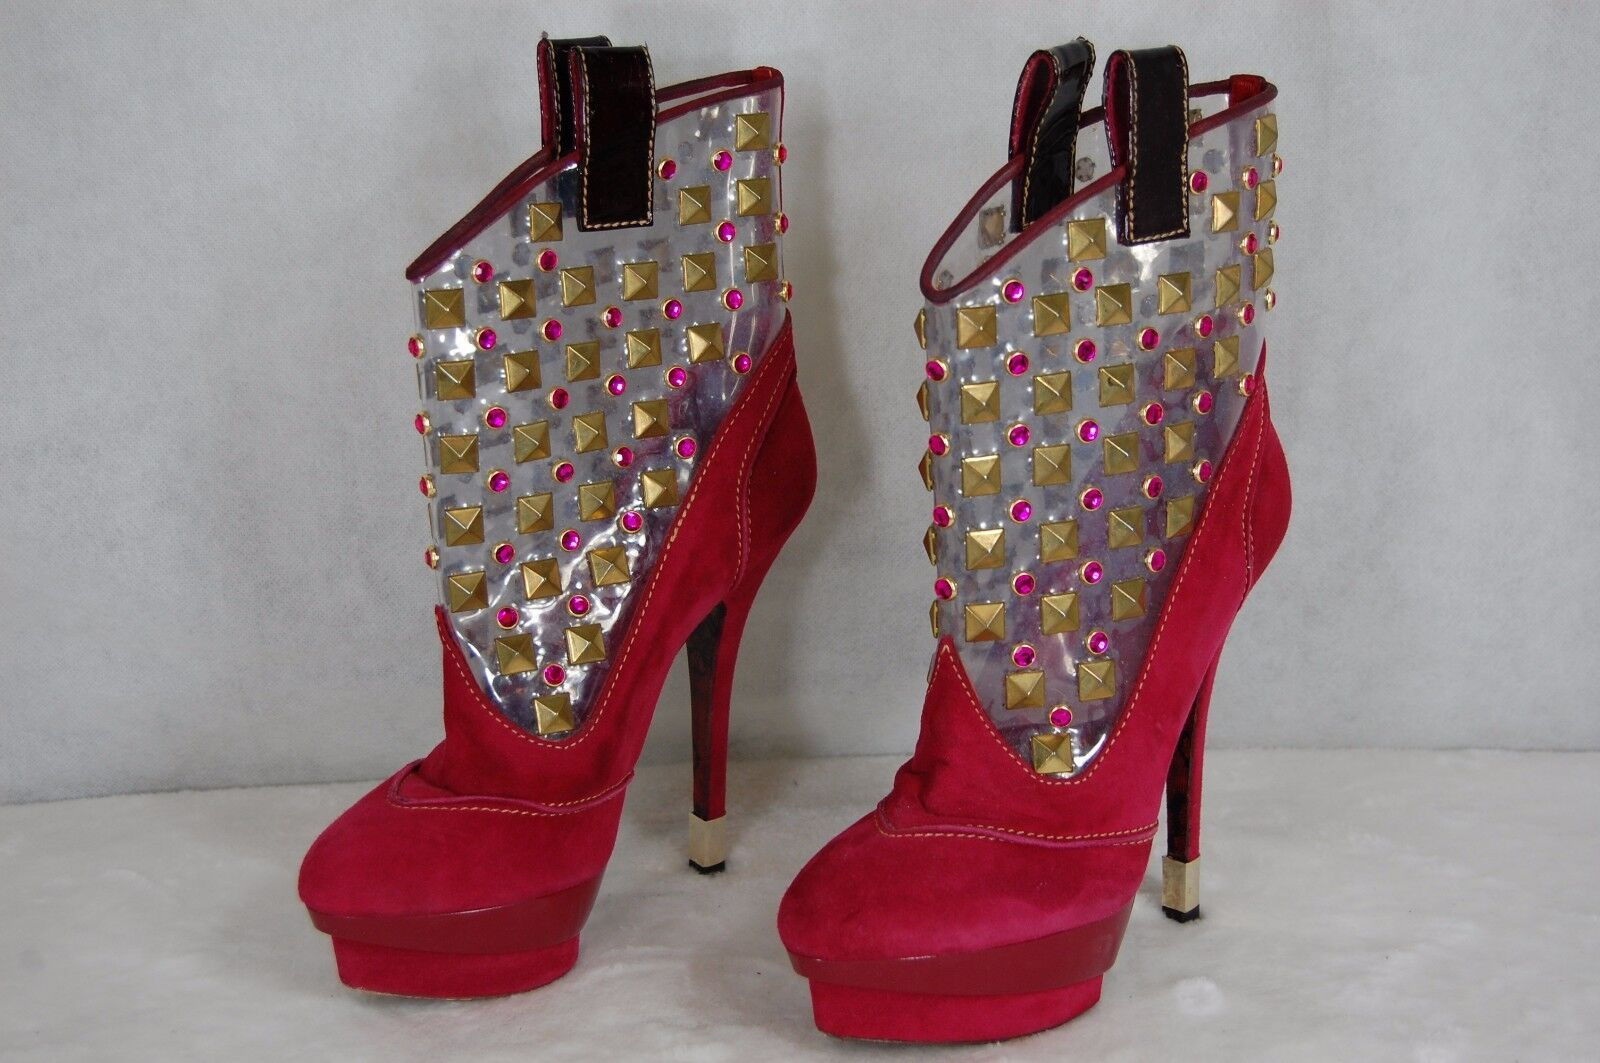 SUPER SEXY!!! CESARE PACIOTTI  RED SUEDE CLEAR STUDDED ANKLE BOOTS US 7.5